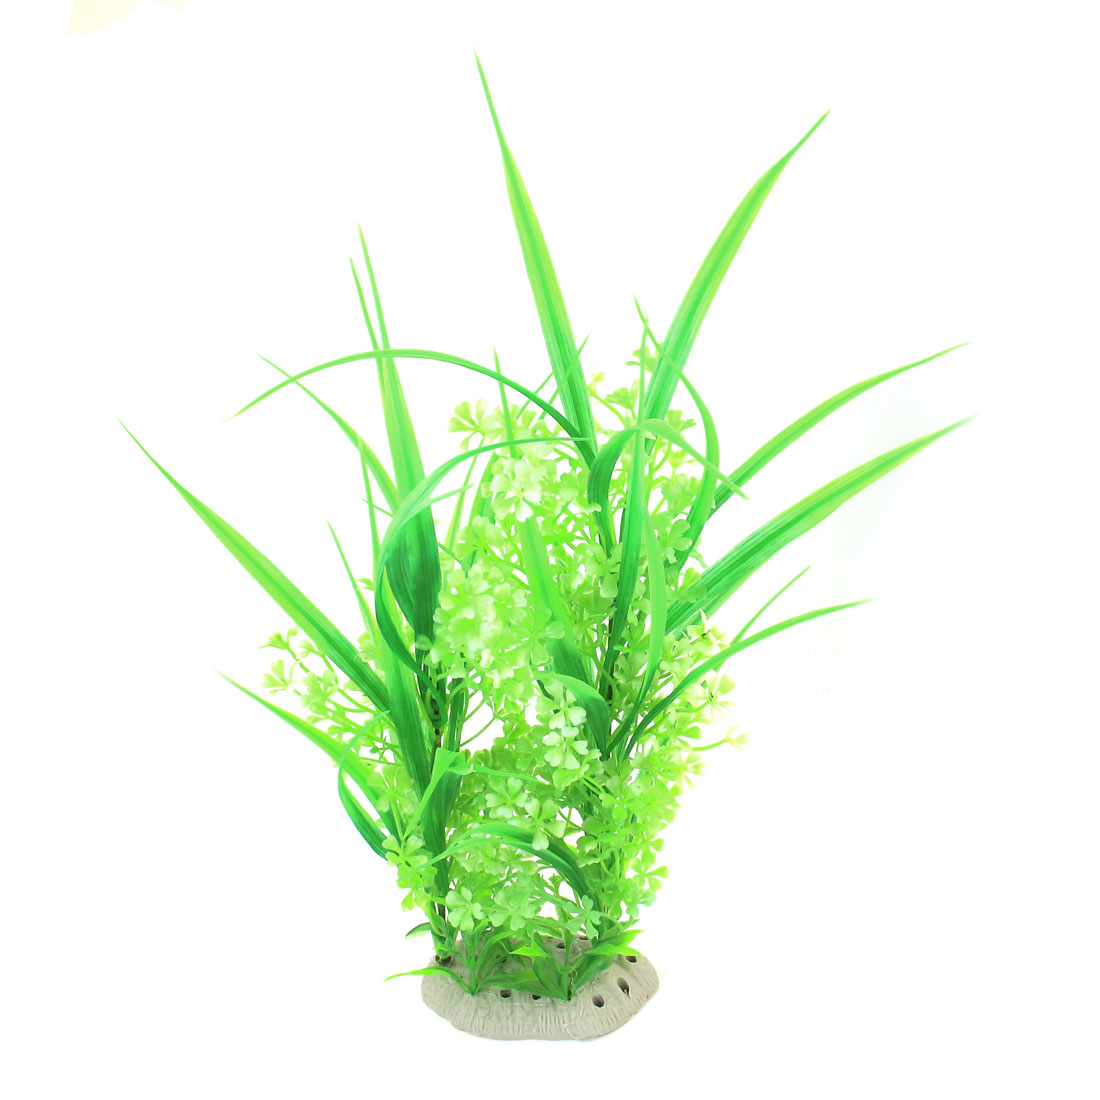 39cm High Ceramic Base Emulational Pale Green Underwater Grass for Aquarium